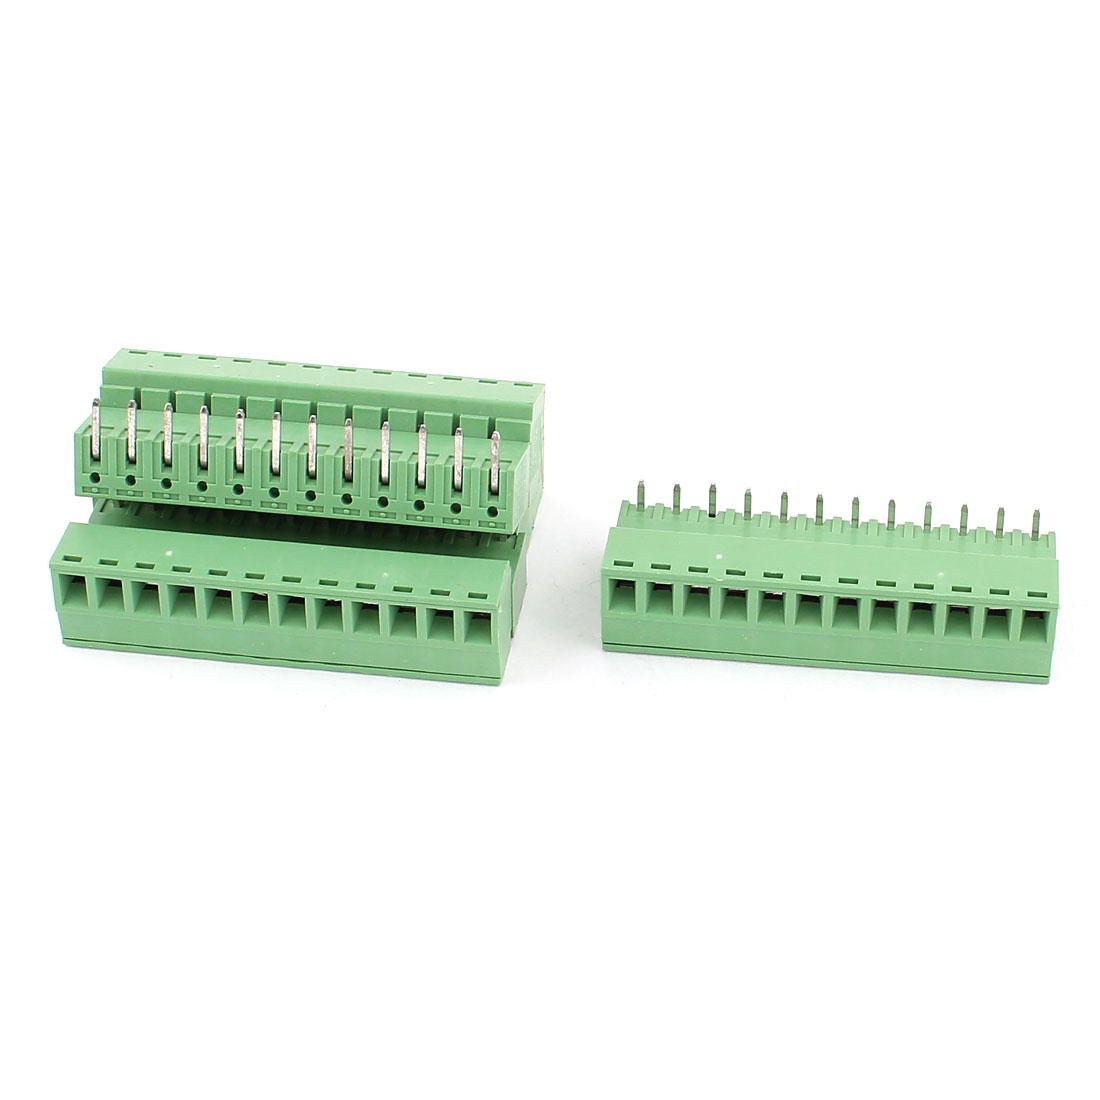 4 Pcs AC 300V 8A 12P PCB Screw Terminal Block Connector 3.81mm Pitch Green